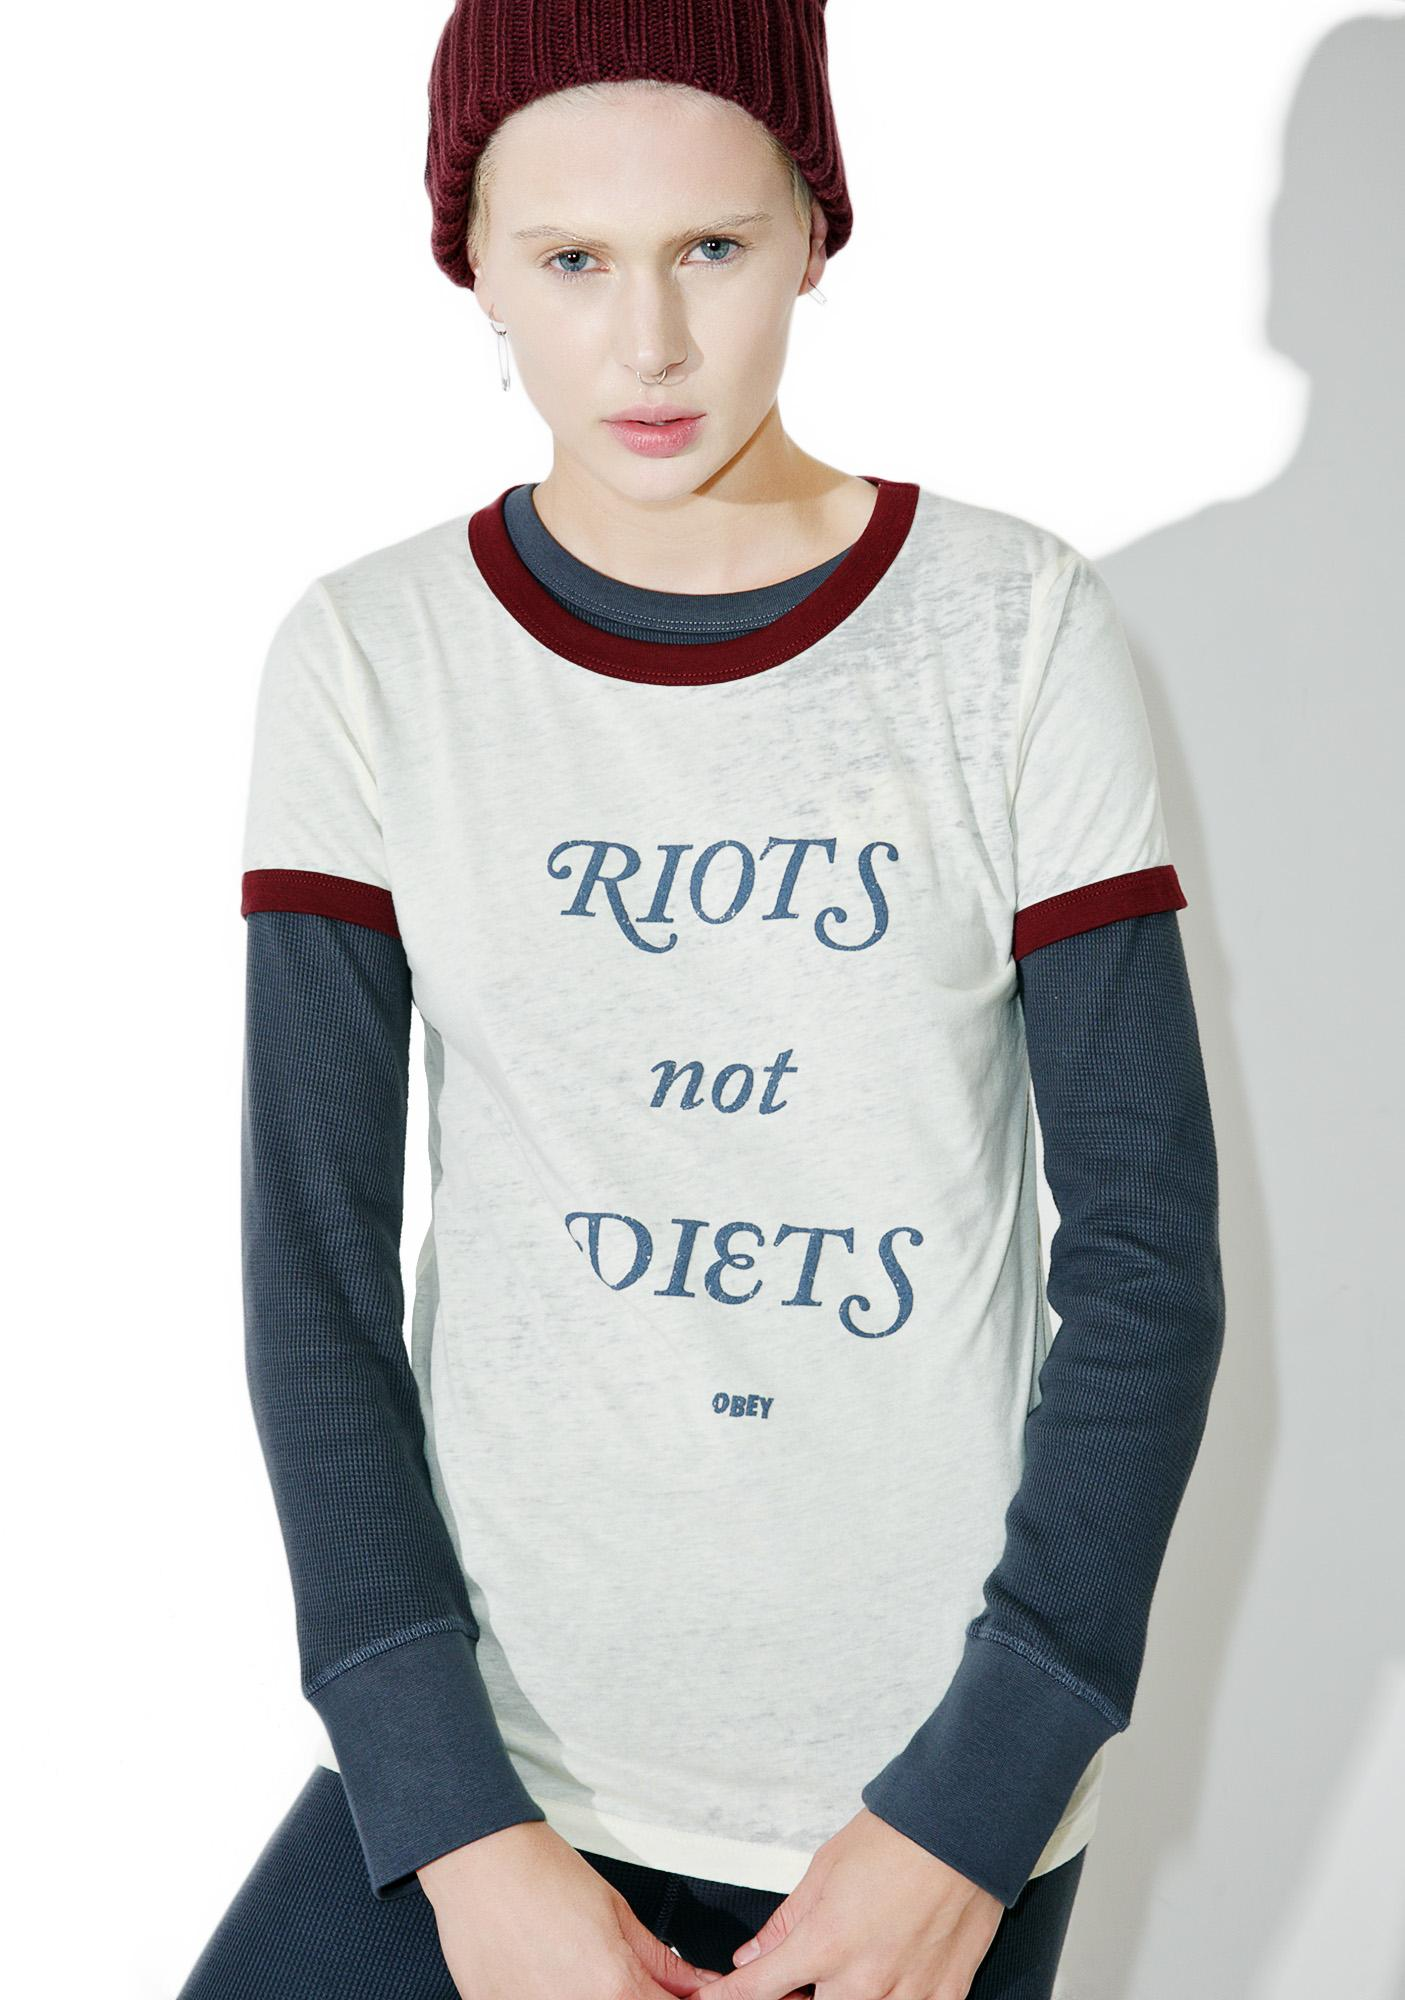 Obey Riots Not Diets Ringer Tee